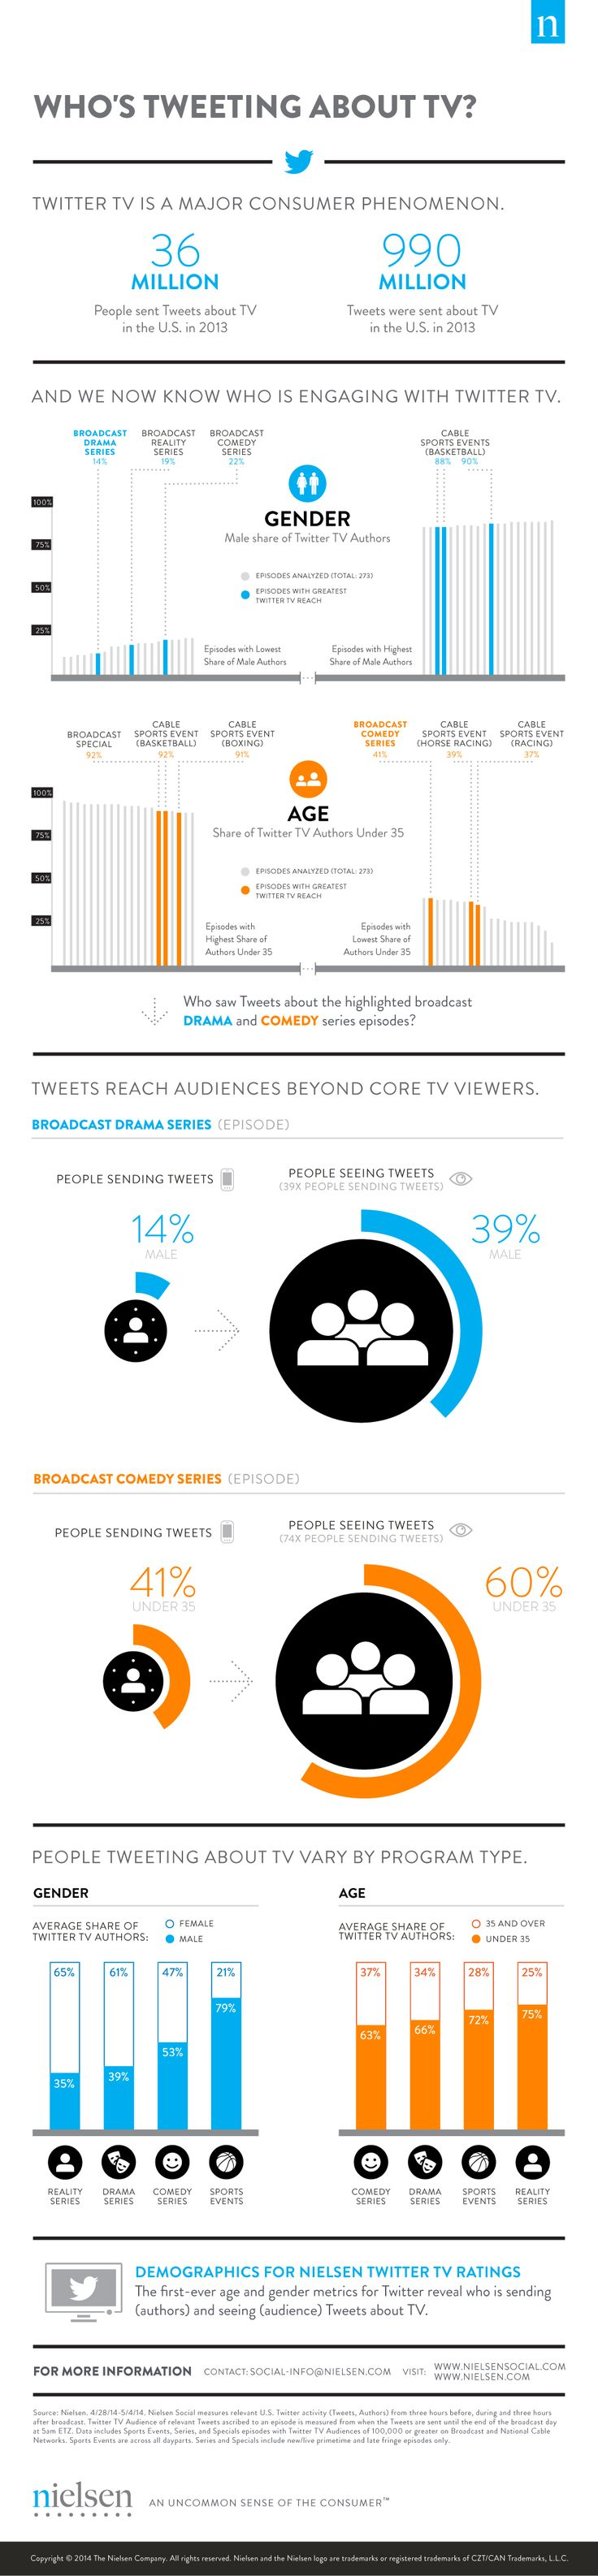 Whos Tweeting about TV_Nielsen_Newswire_May_2014